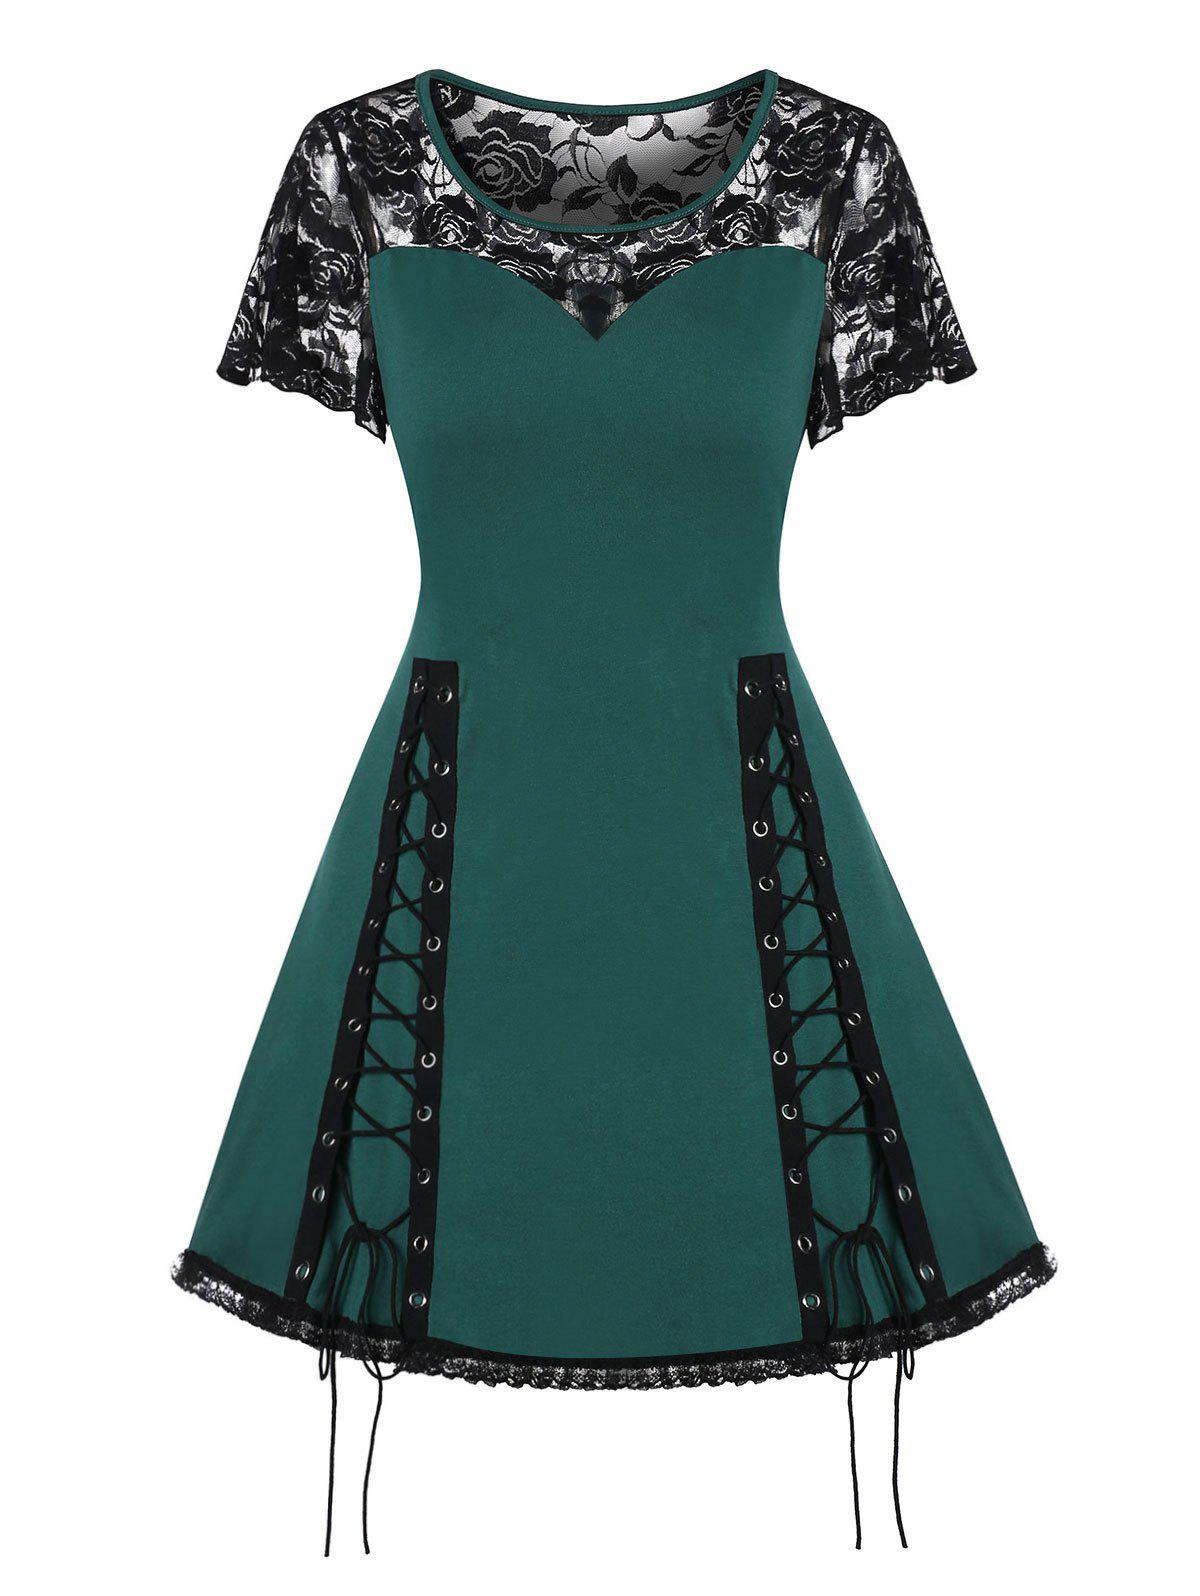 Online Lace Up Fit And Flare Sheer Dress